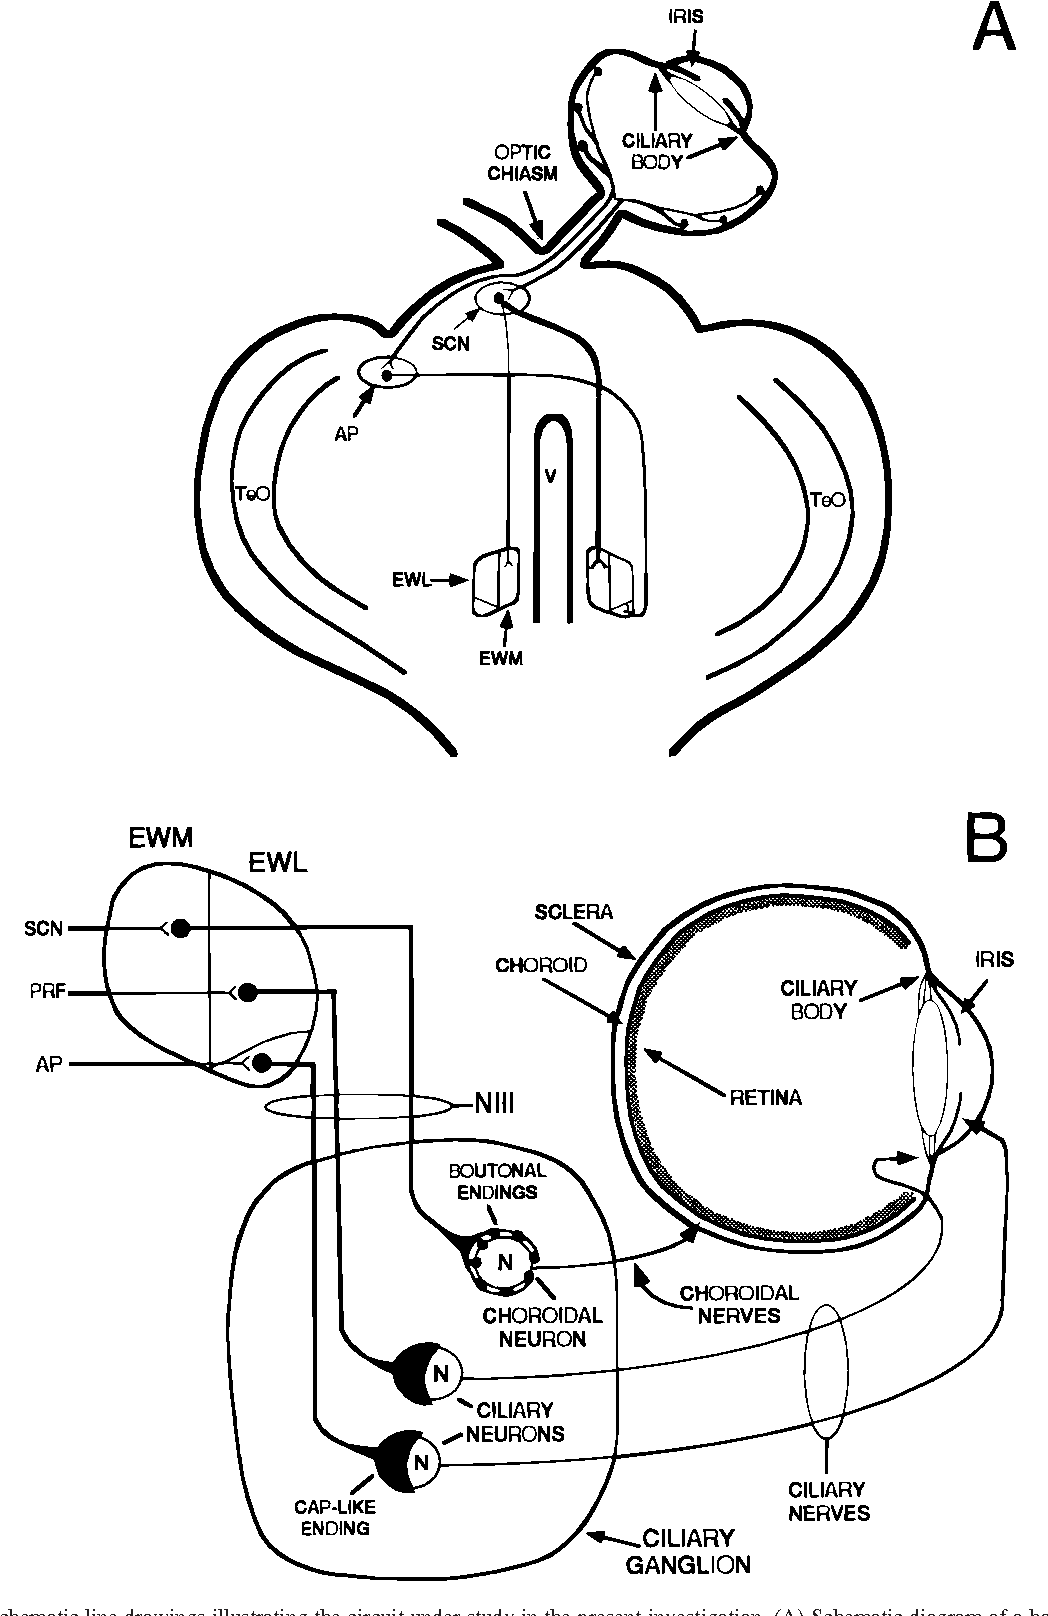 hight resolution of schematic line drawings illustrating the circuit under study in the present investigation